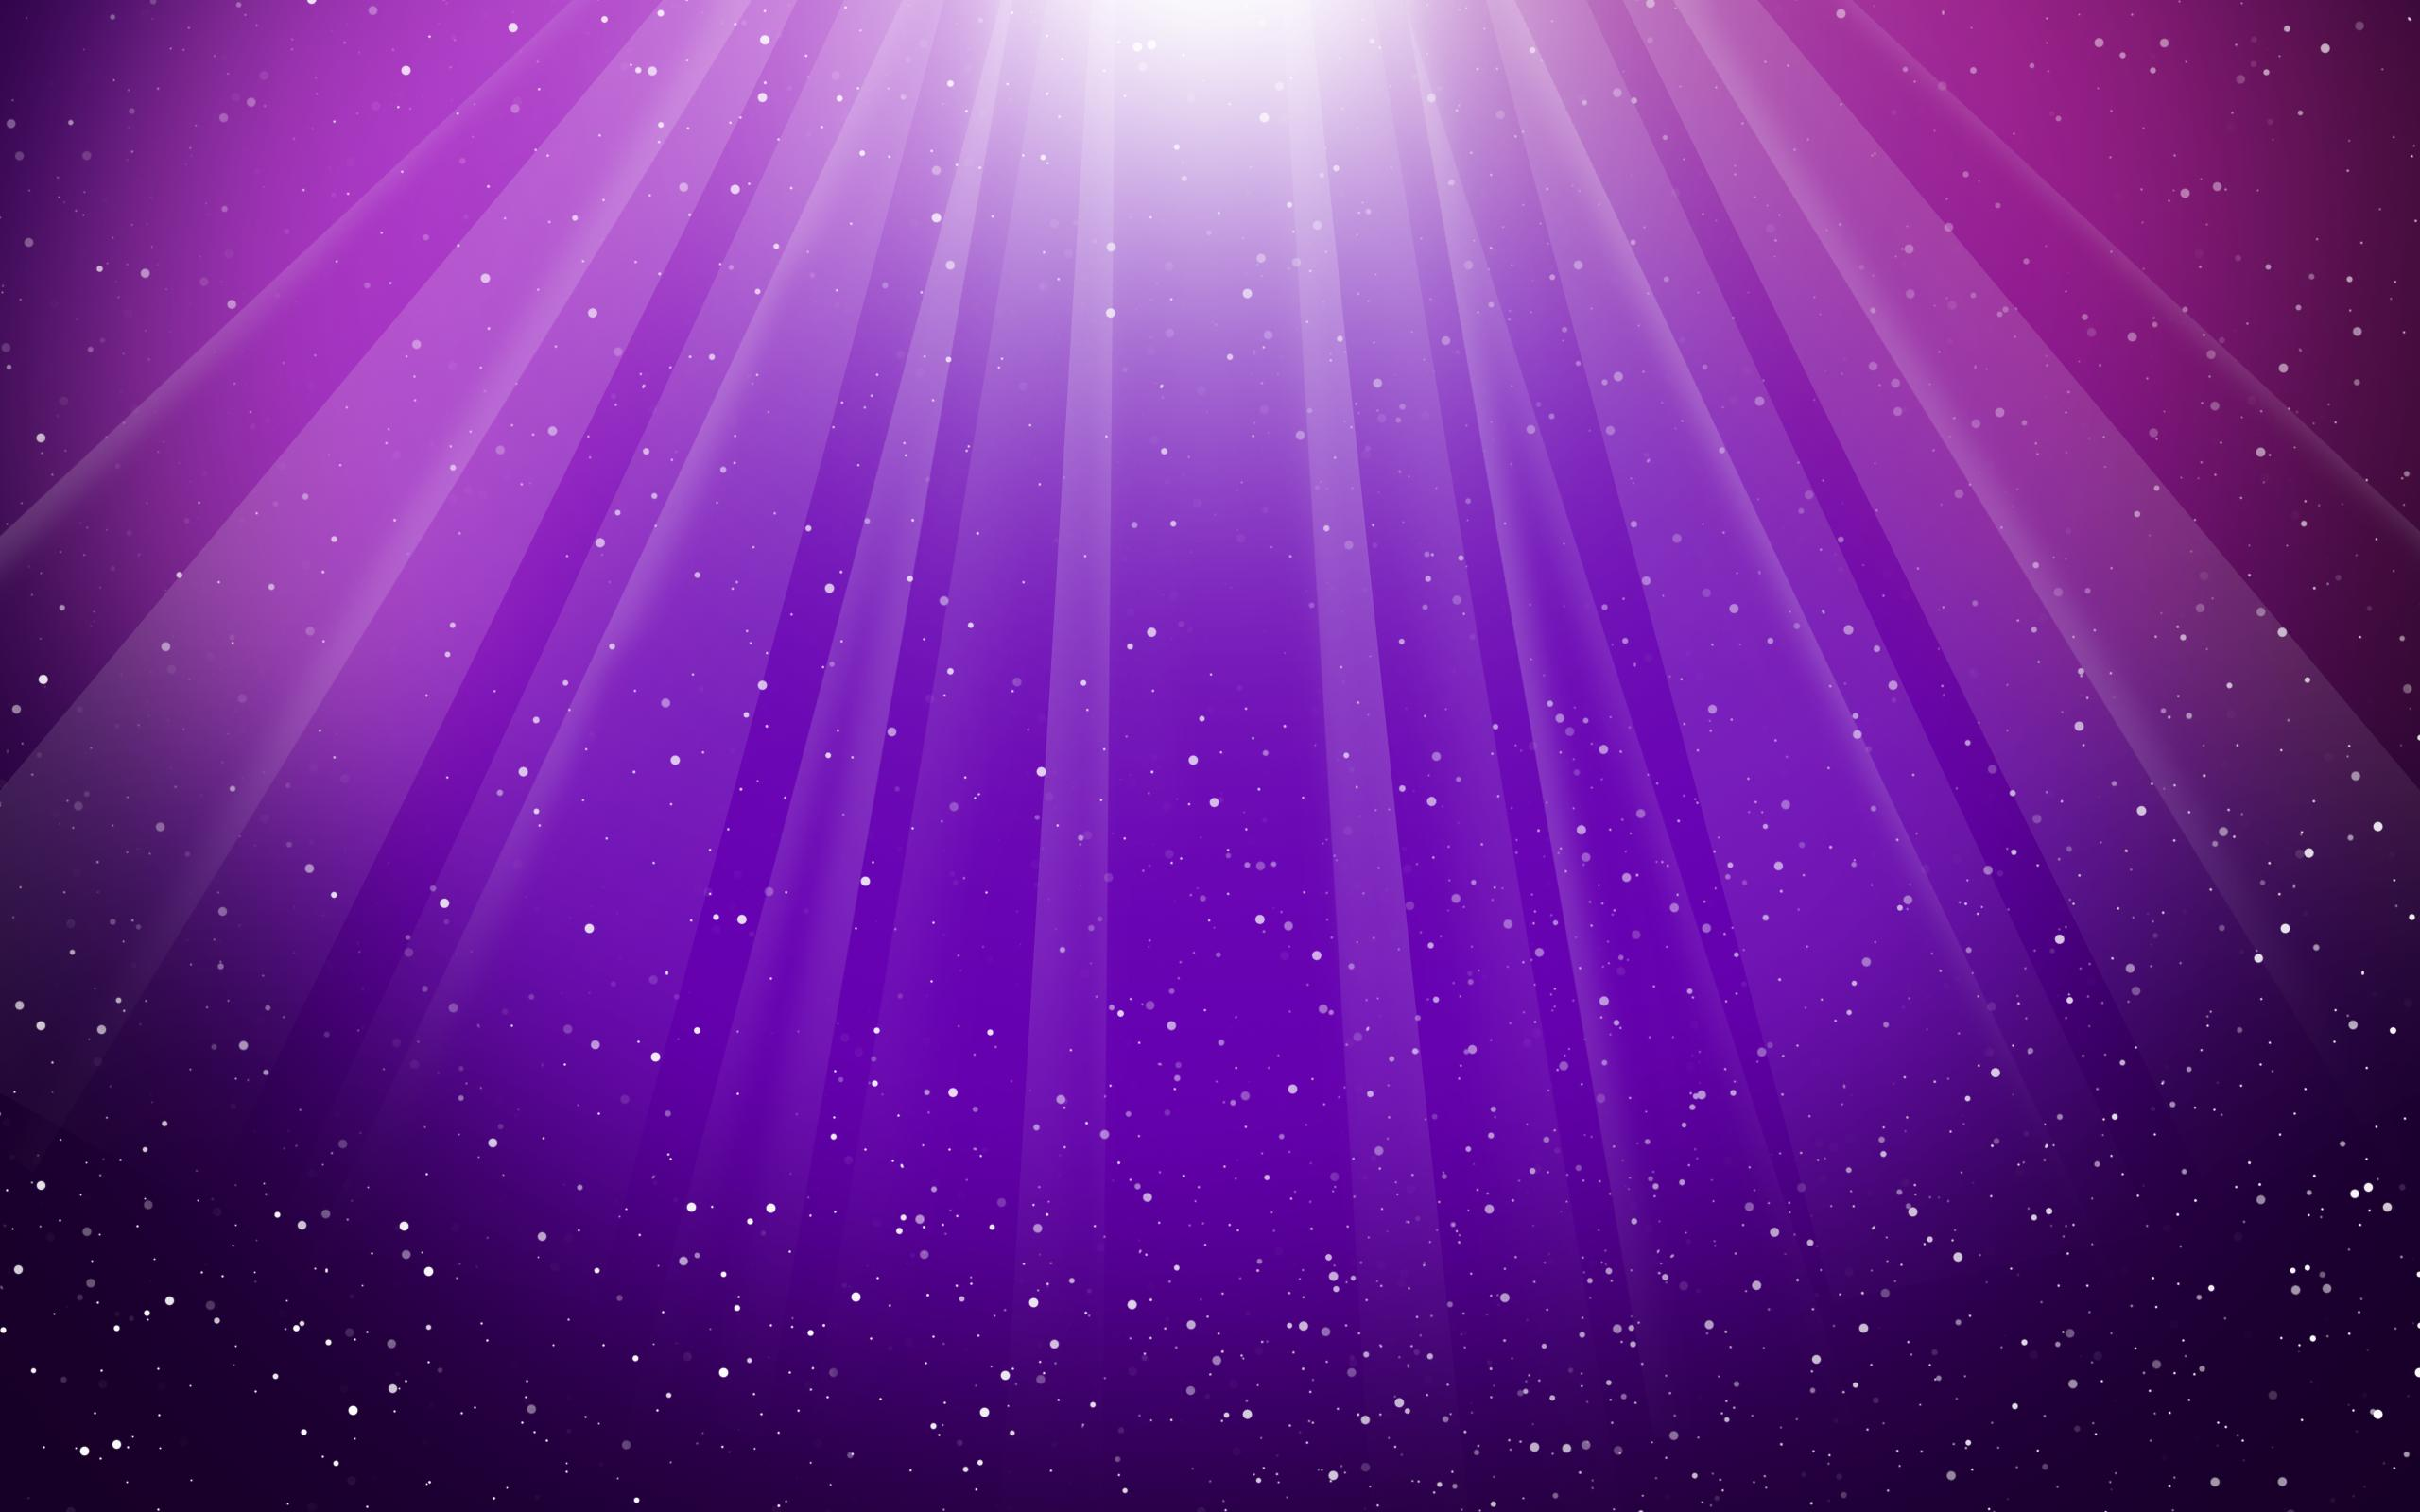 abstract hd Violet Backgrounds